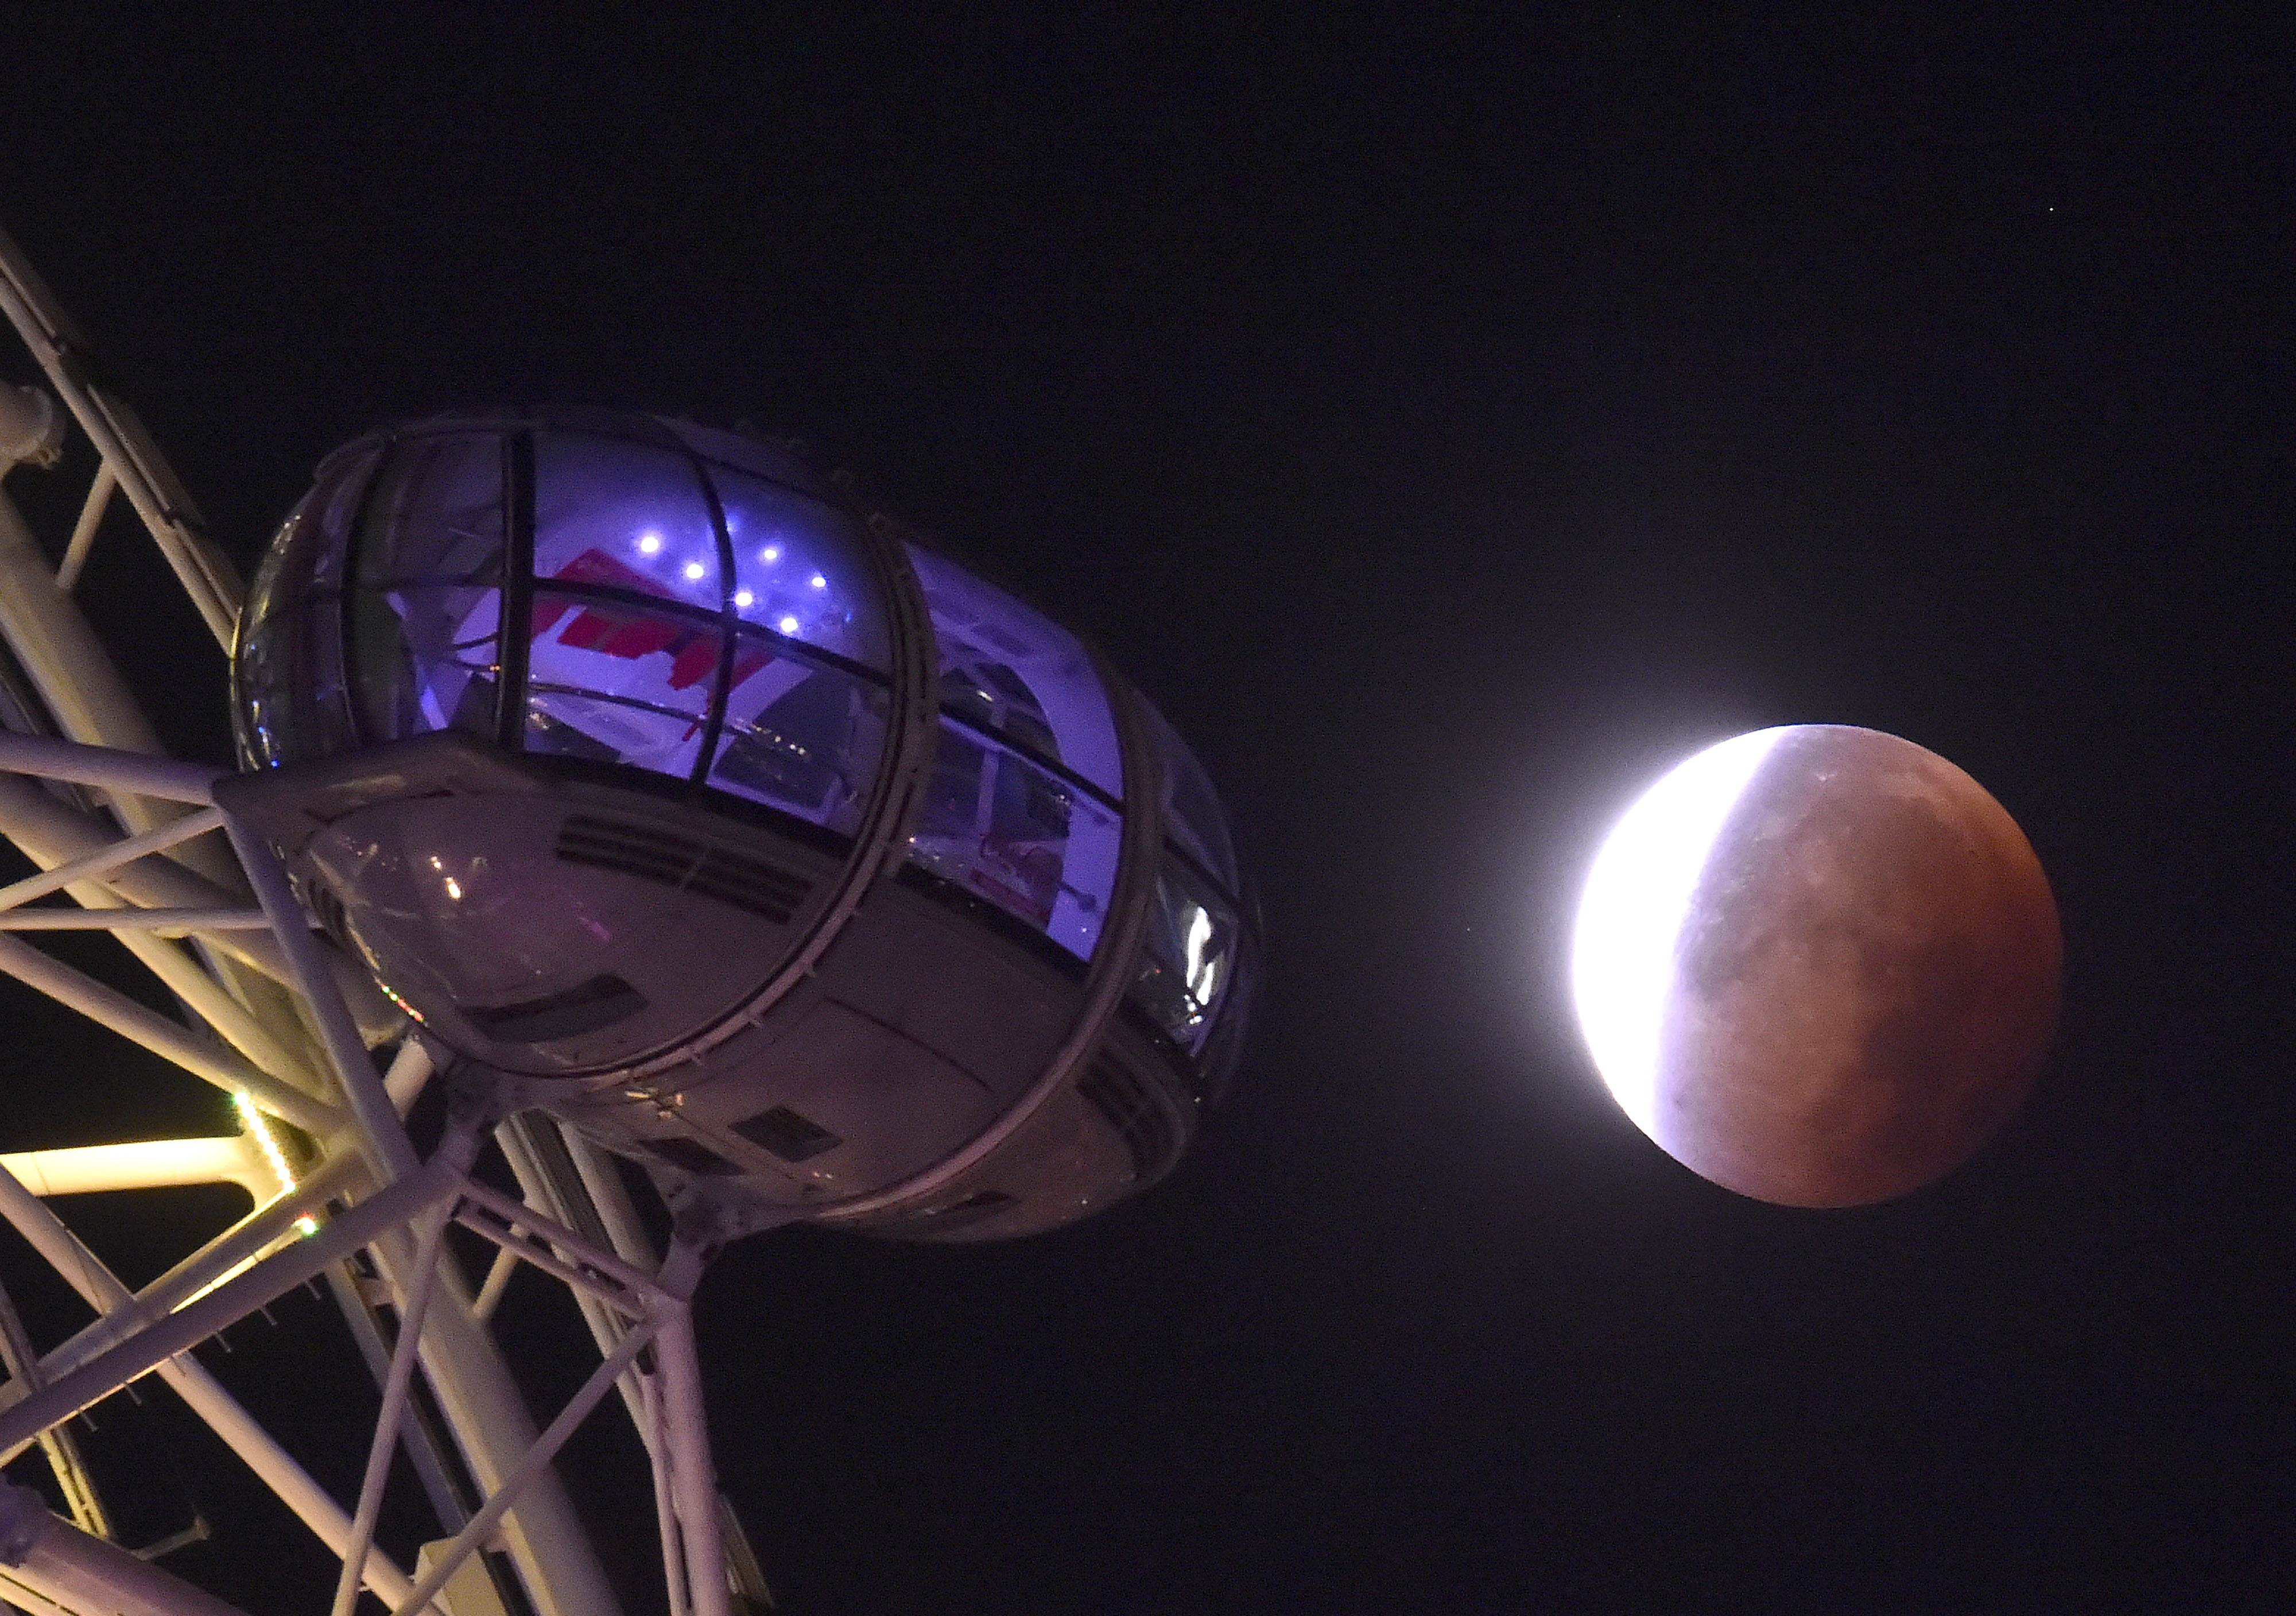 A supermoon is seen during a lunar eclipse behind pods of the London Eye wheel on Sept. 28. Photo by Toby Melville/Reuters